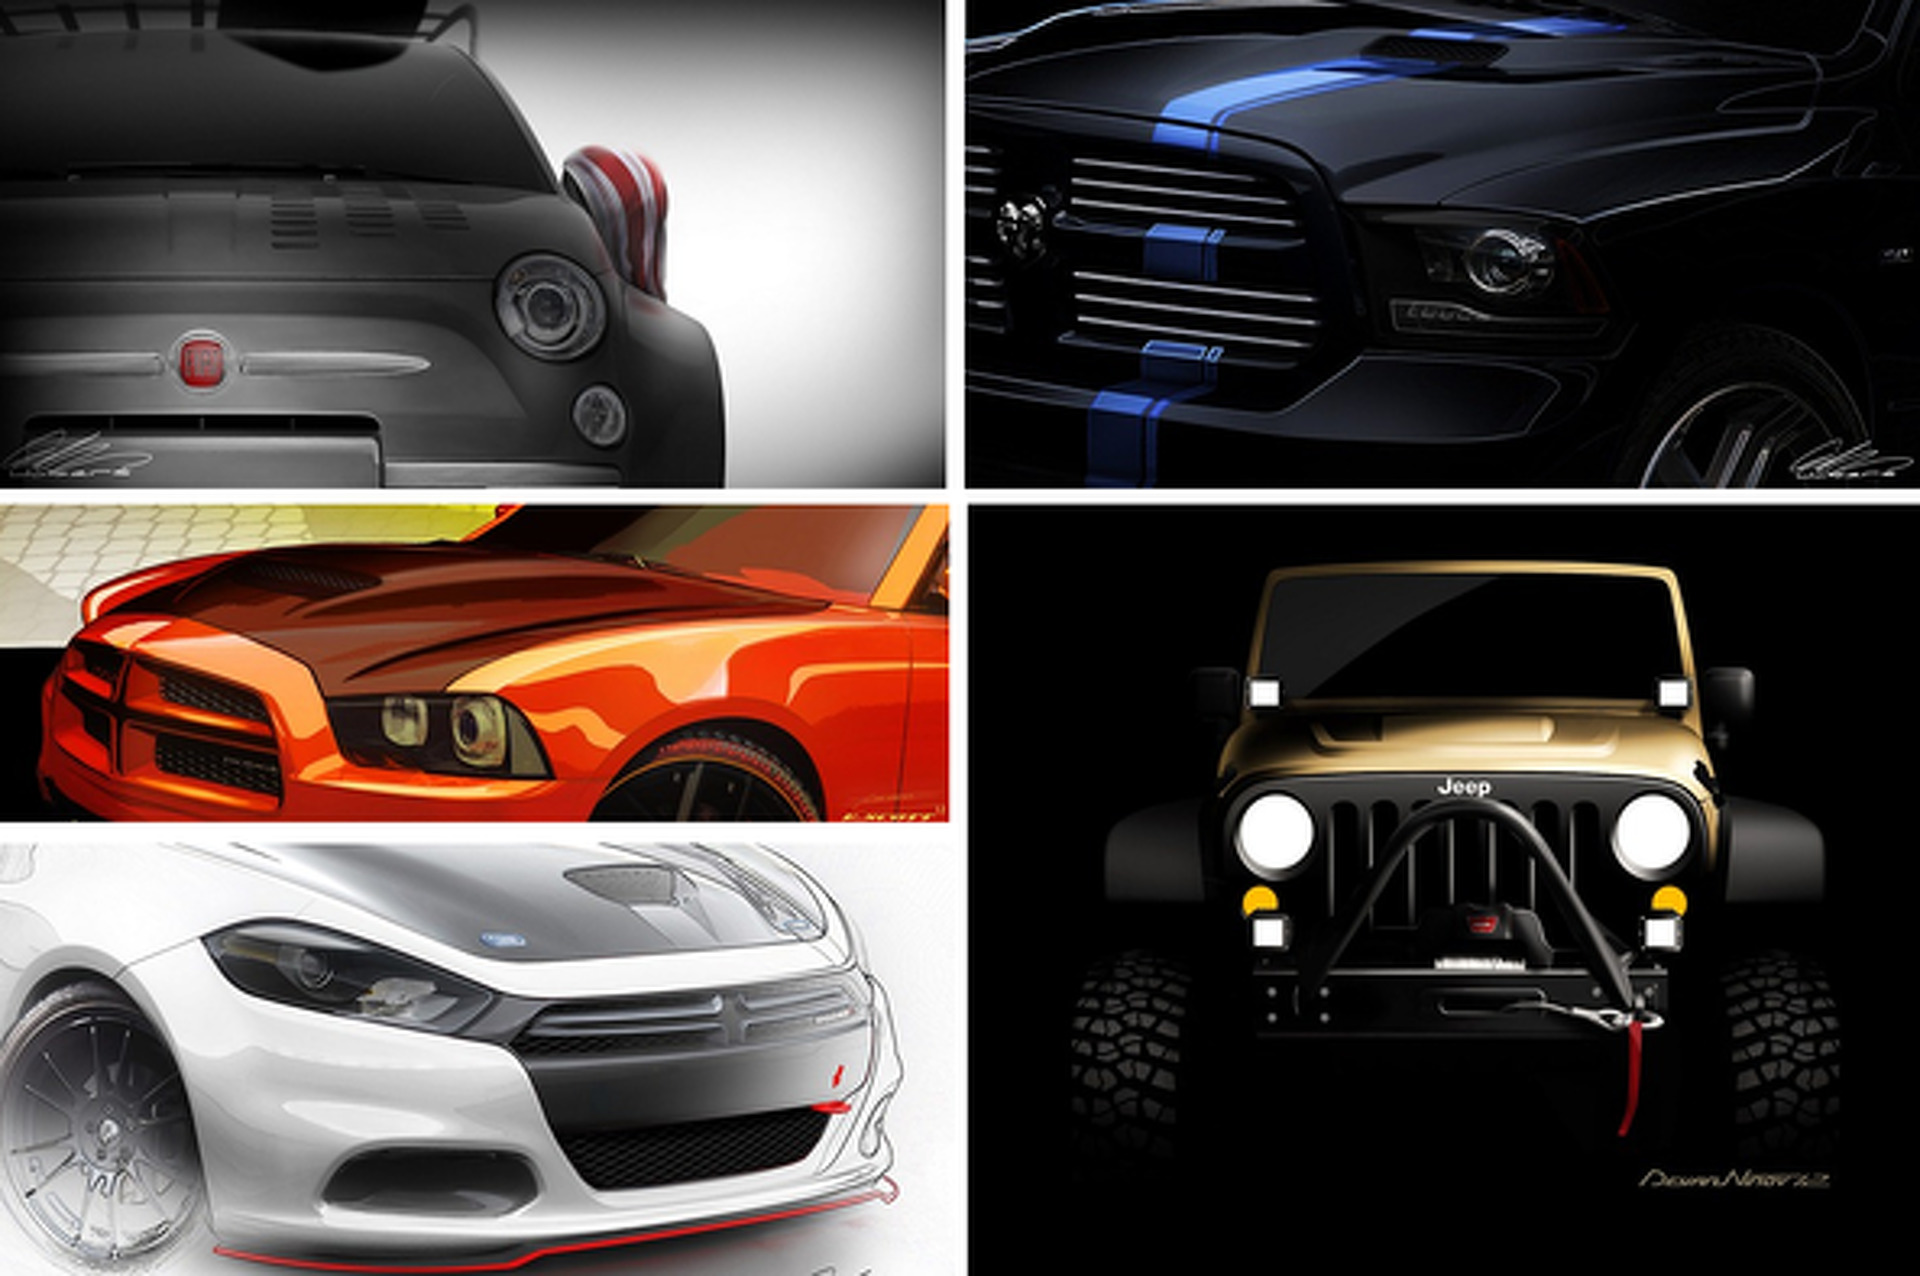 Chrysler and Mopar Preparing 20 Concepts for SEMA 2012